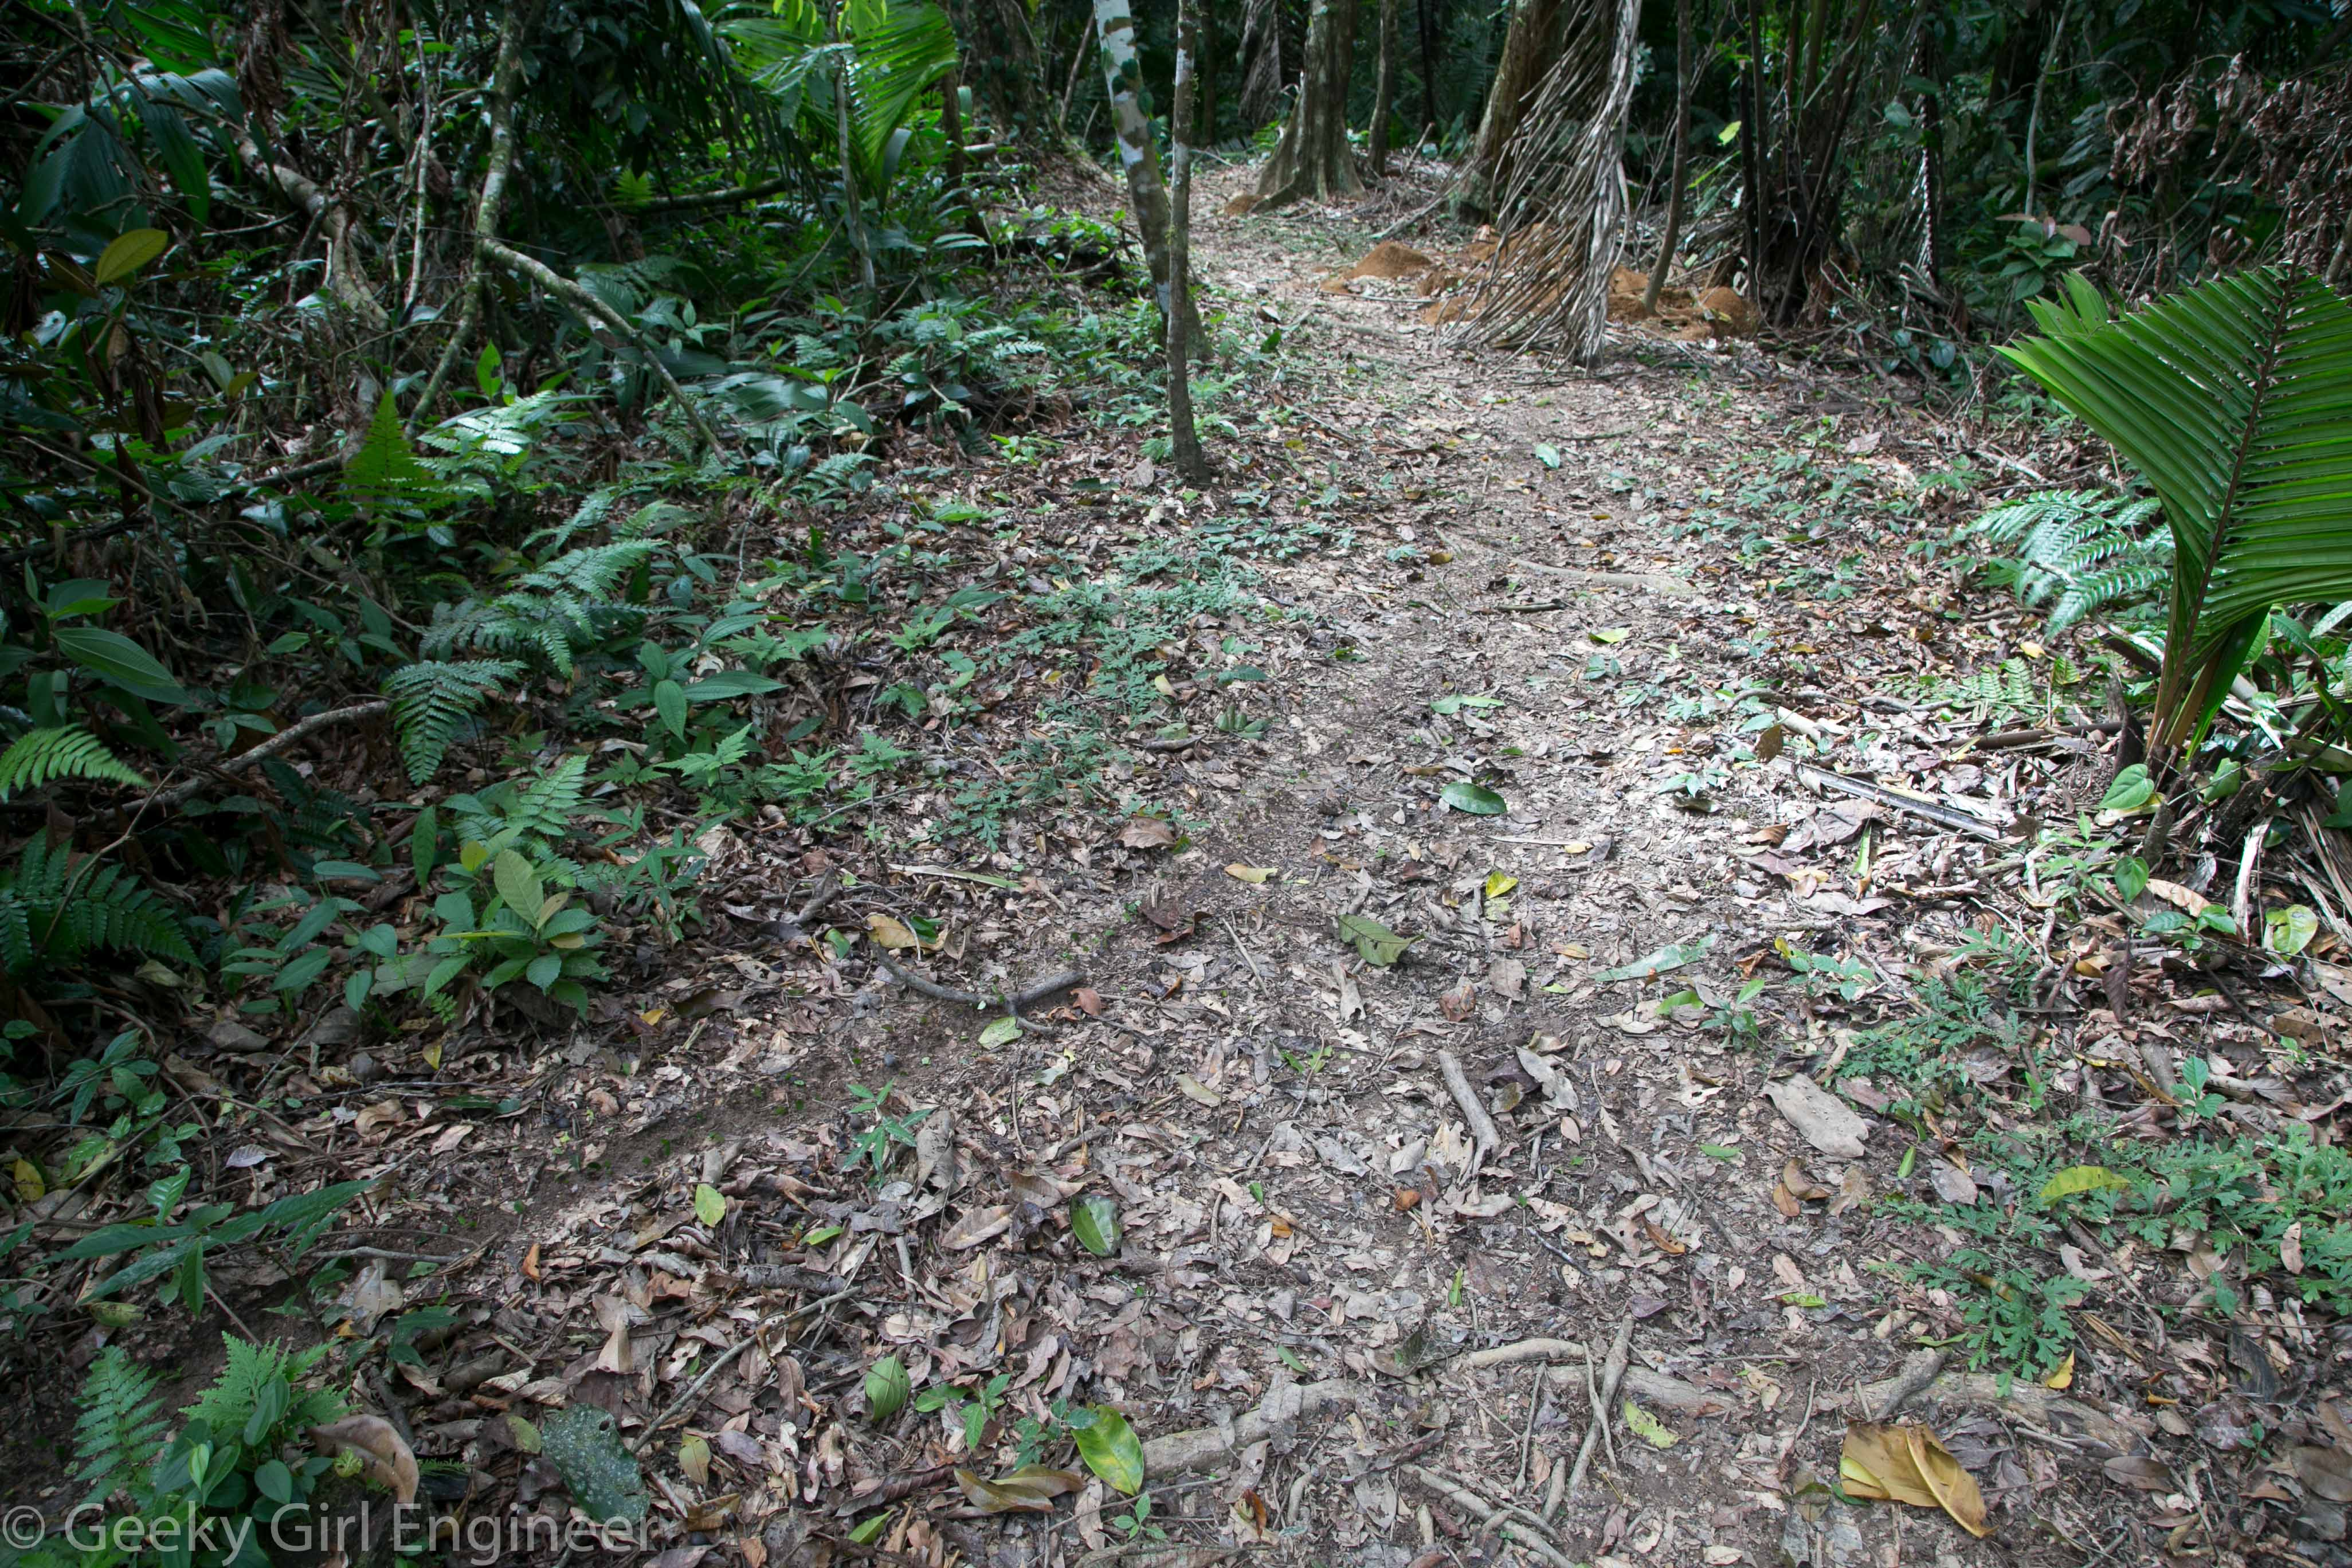 Leaf cutter ant highway, the mound can be seen in the far right underneath the dead palm frond